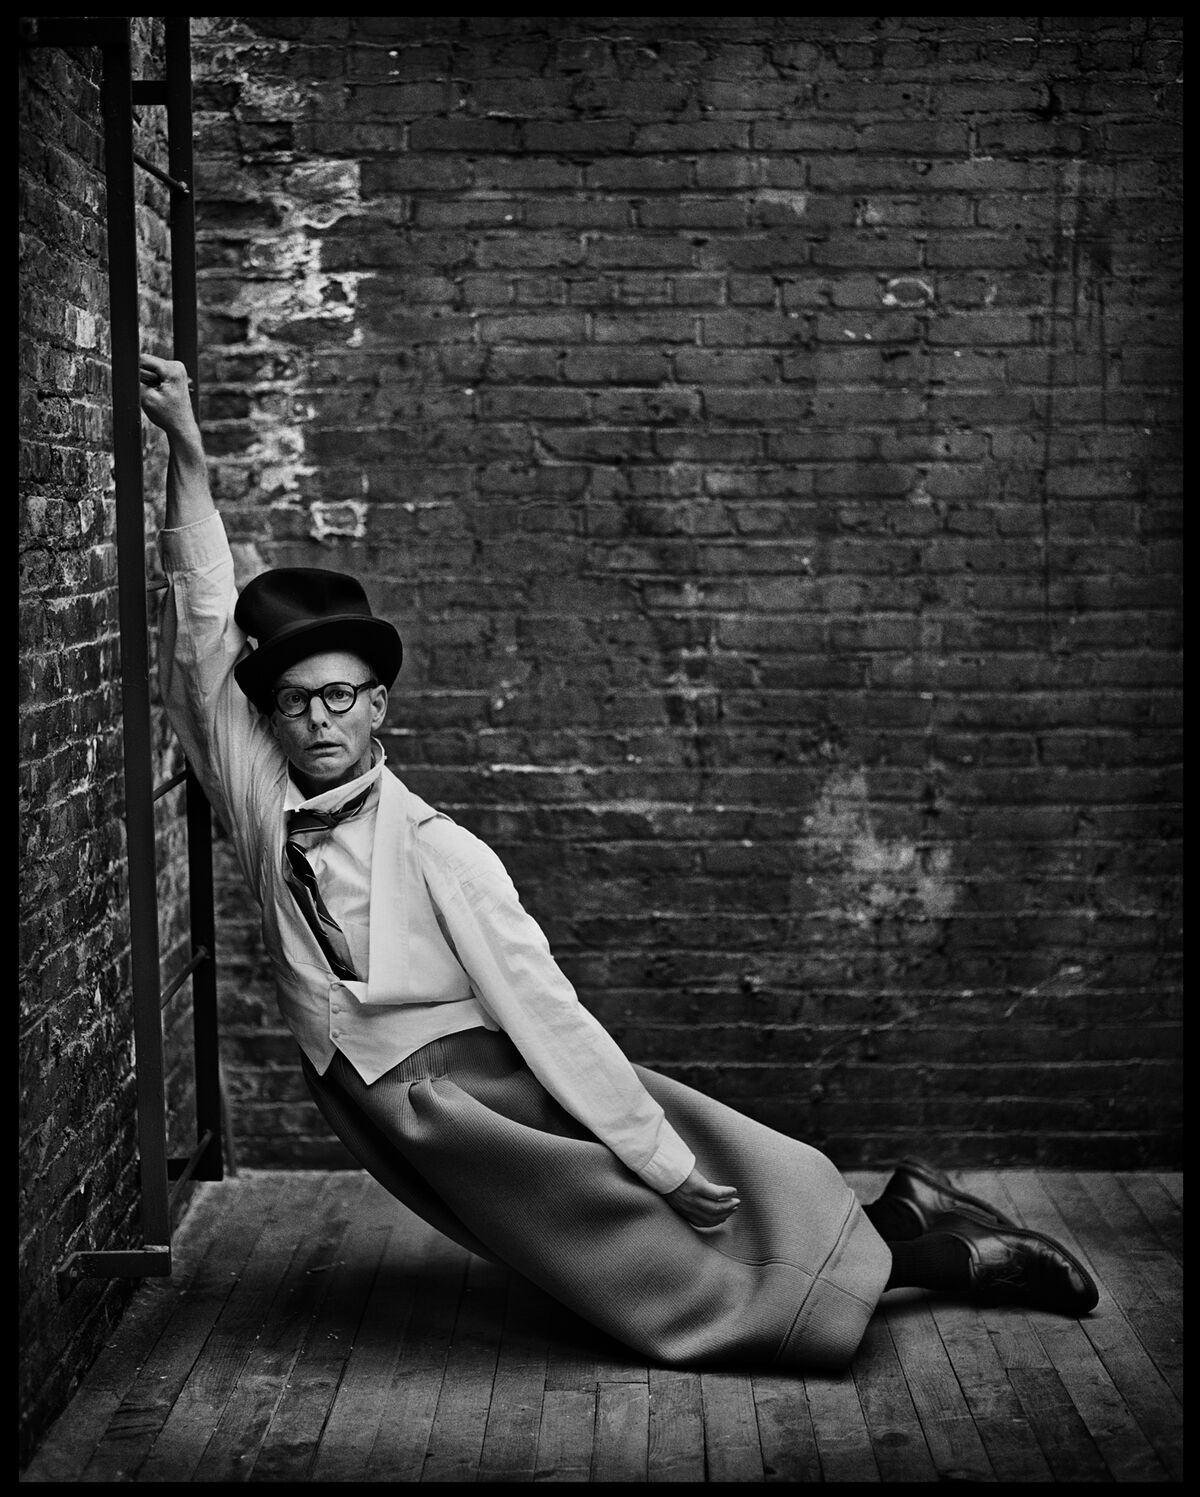 Mark Seliger, Bill Irwin, New York, New York, 2002. Courtesy of the artist.